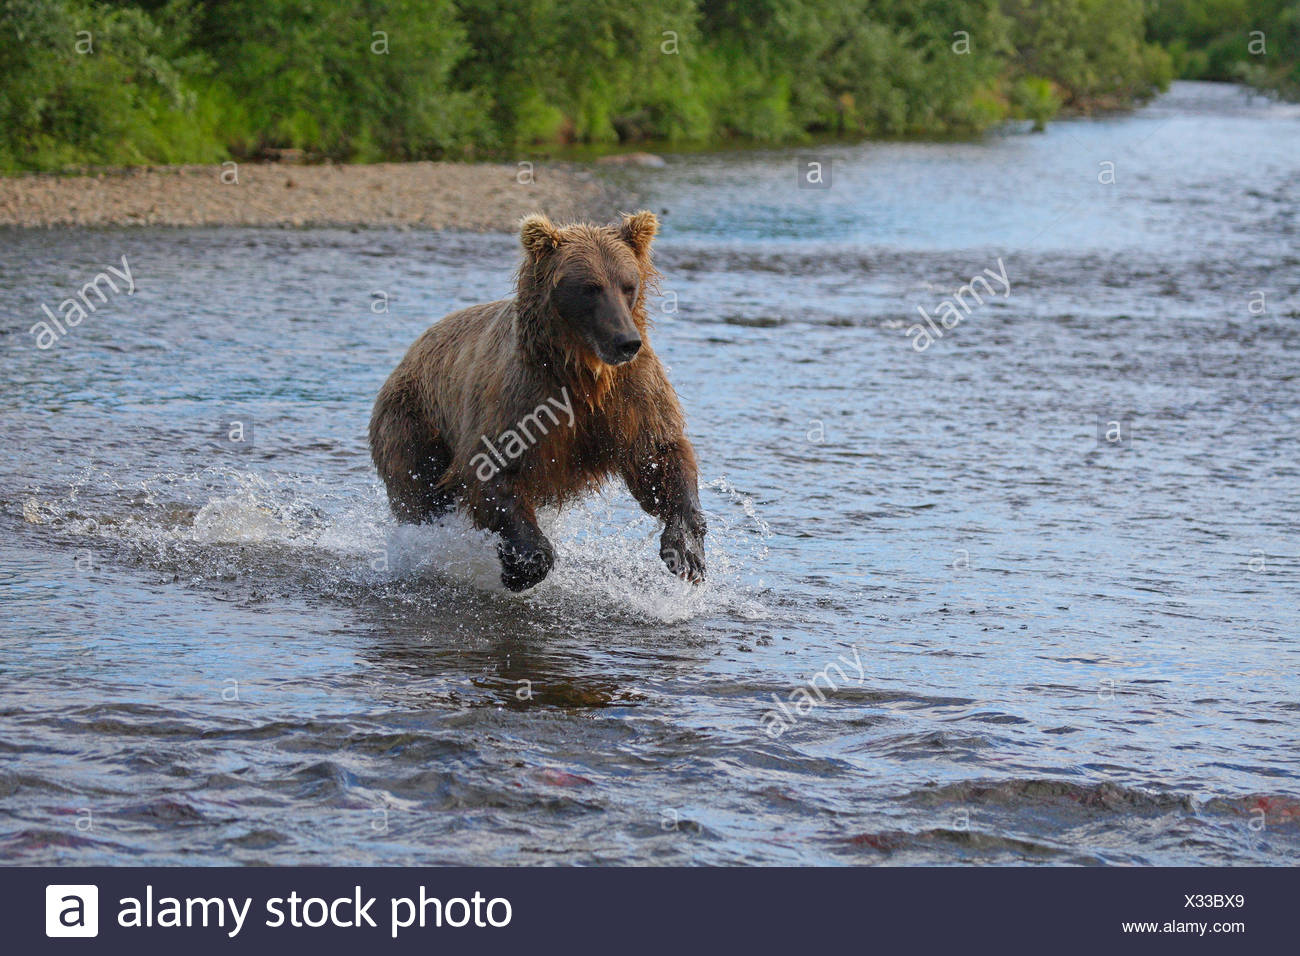 brown bear, grizzly bear (Ursus arctos horribilis), catching salmon in the shallow water of a river, USA, Alaska - Stock Image